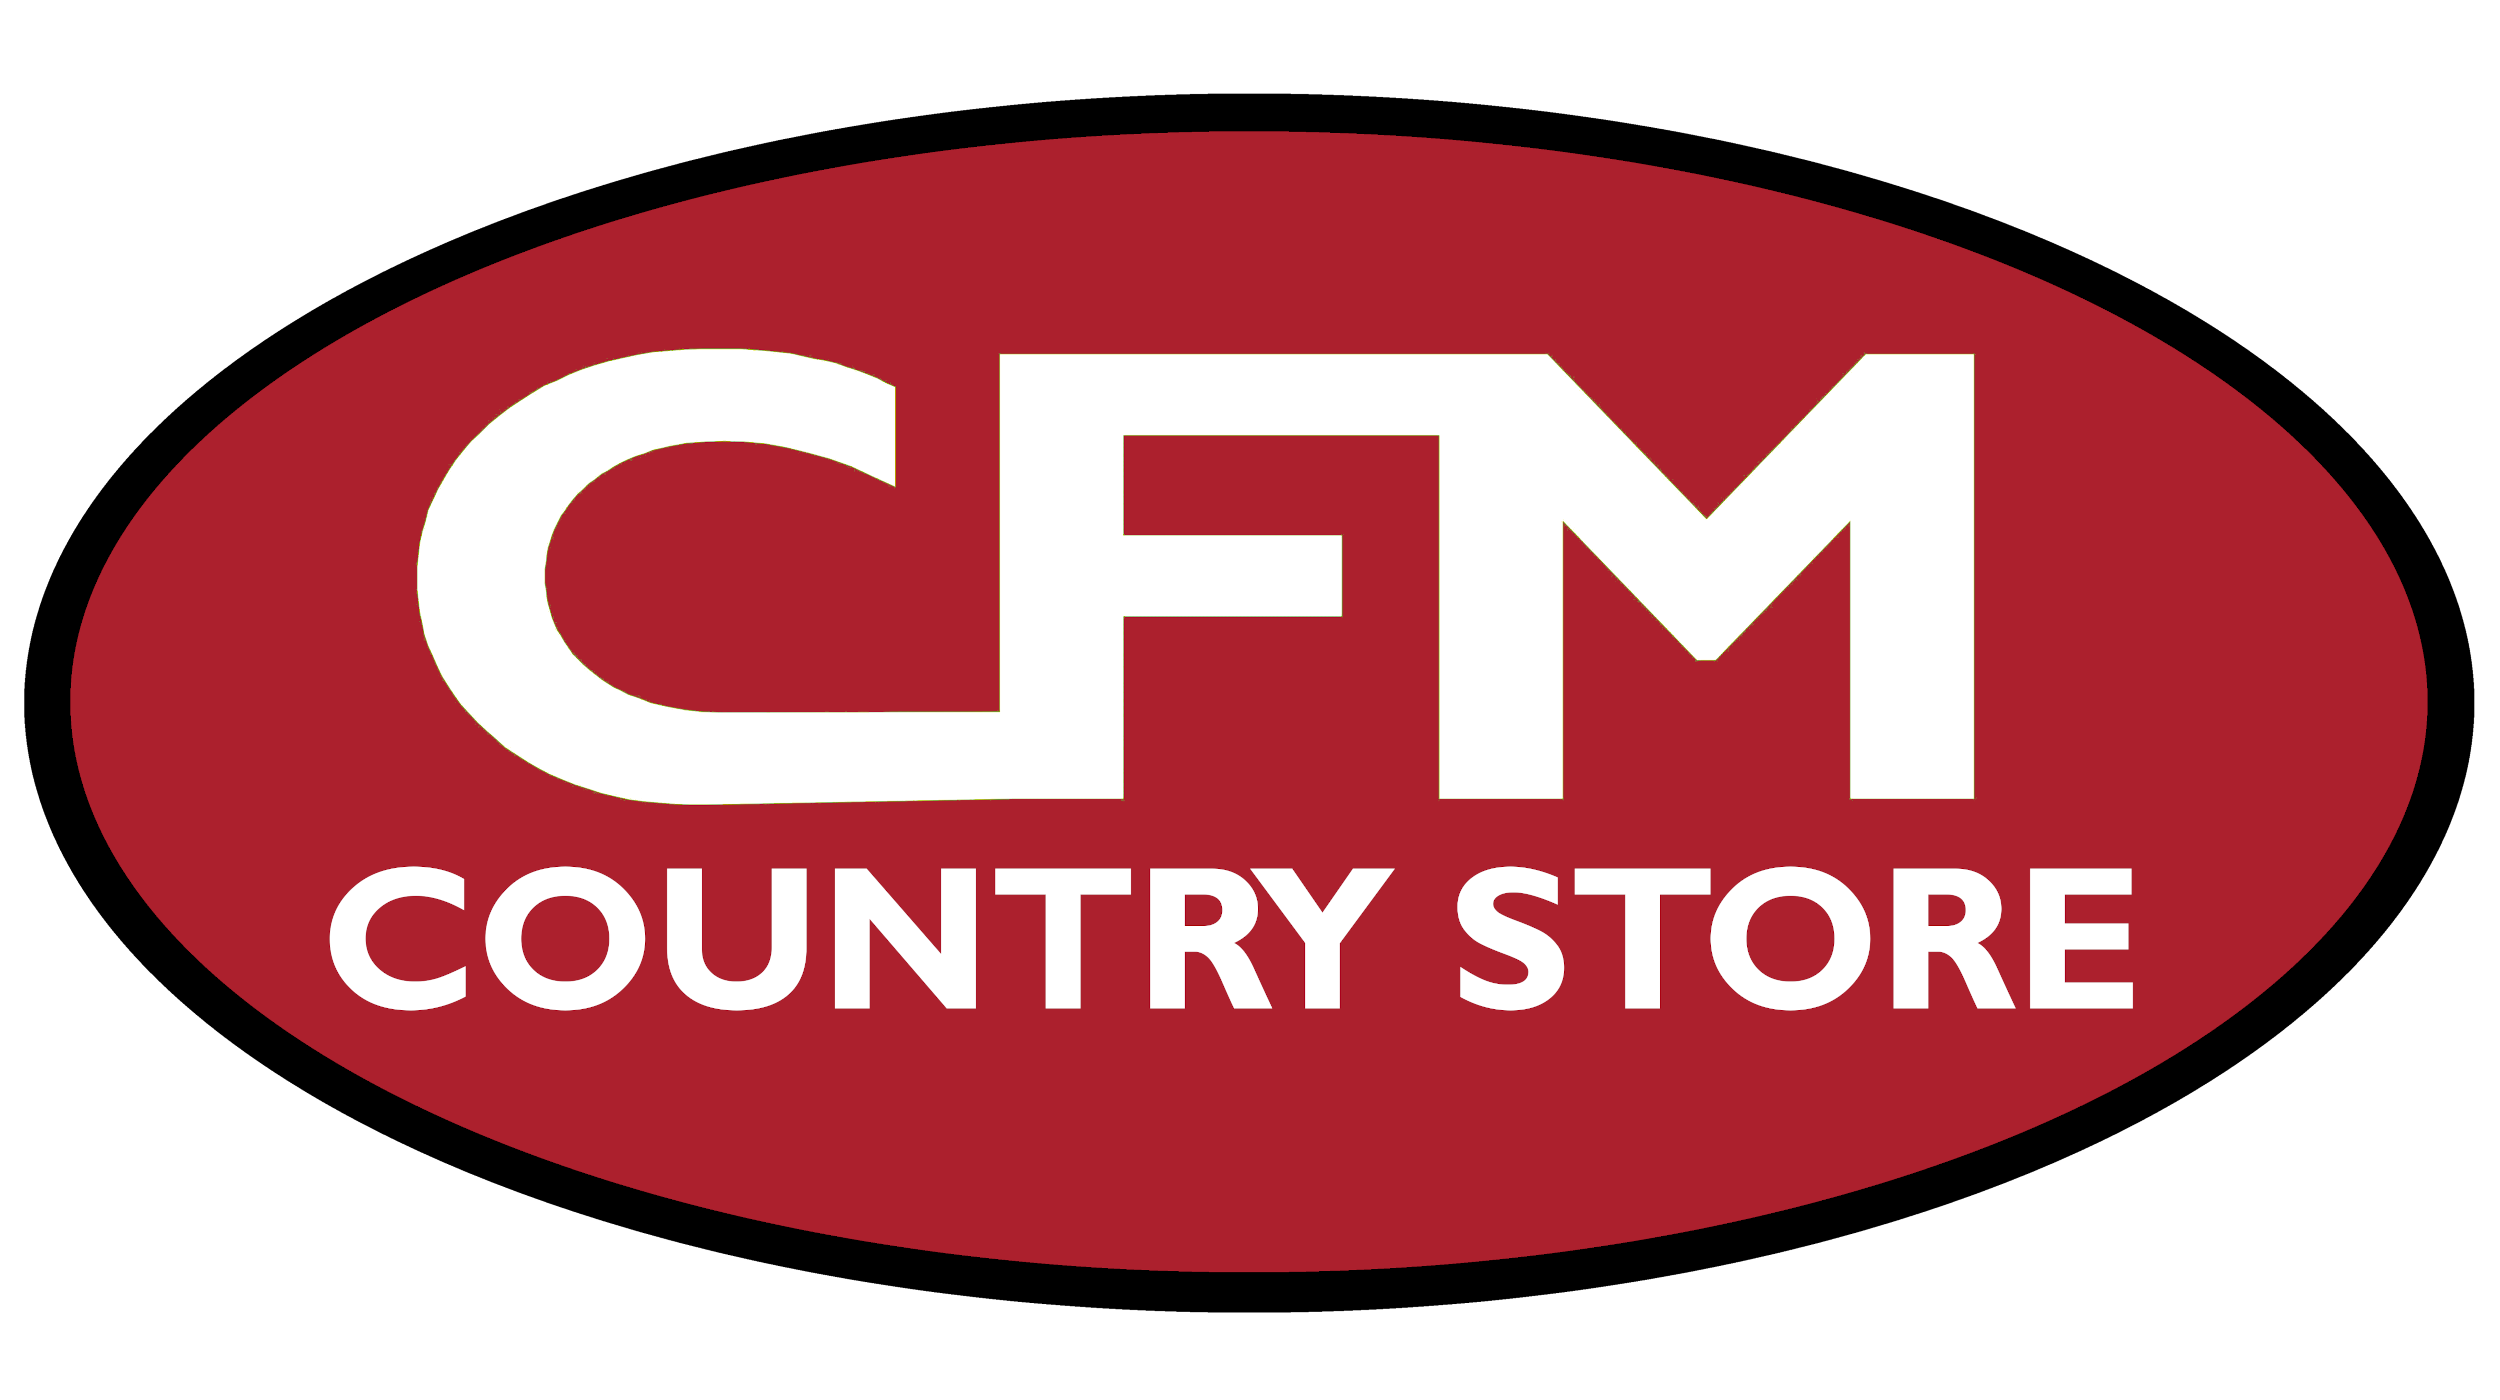 CFM Country Store